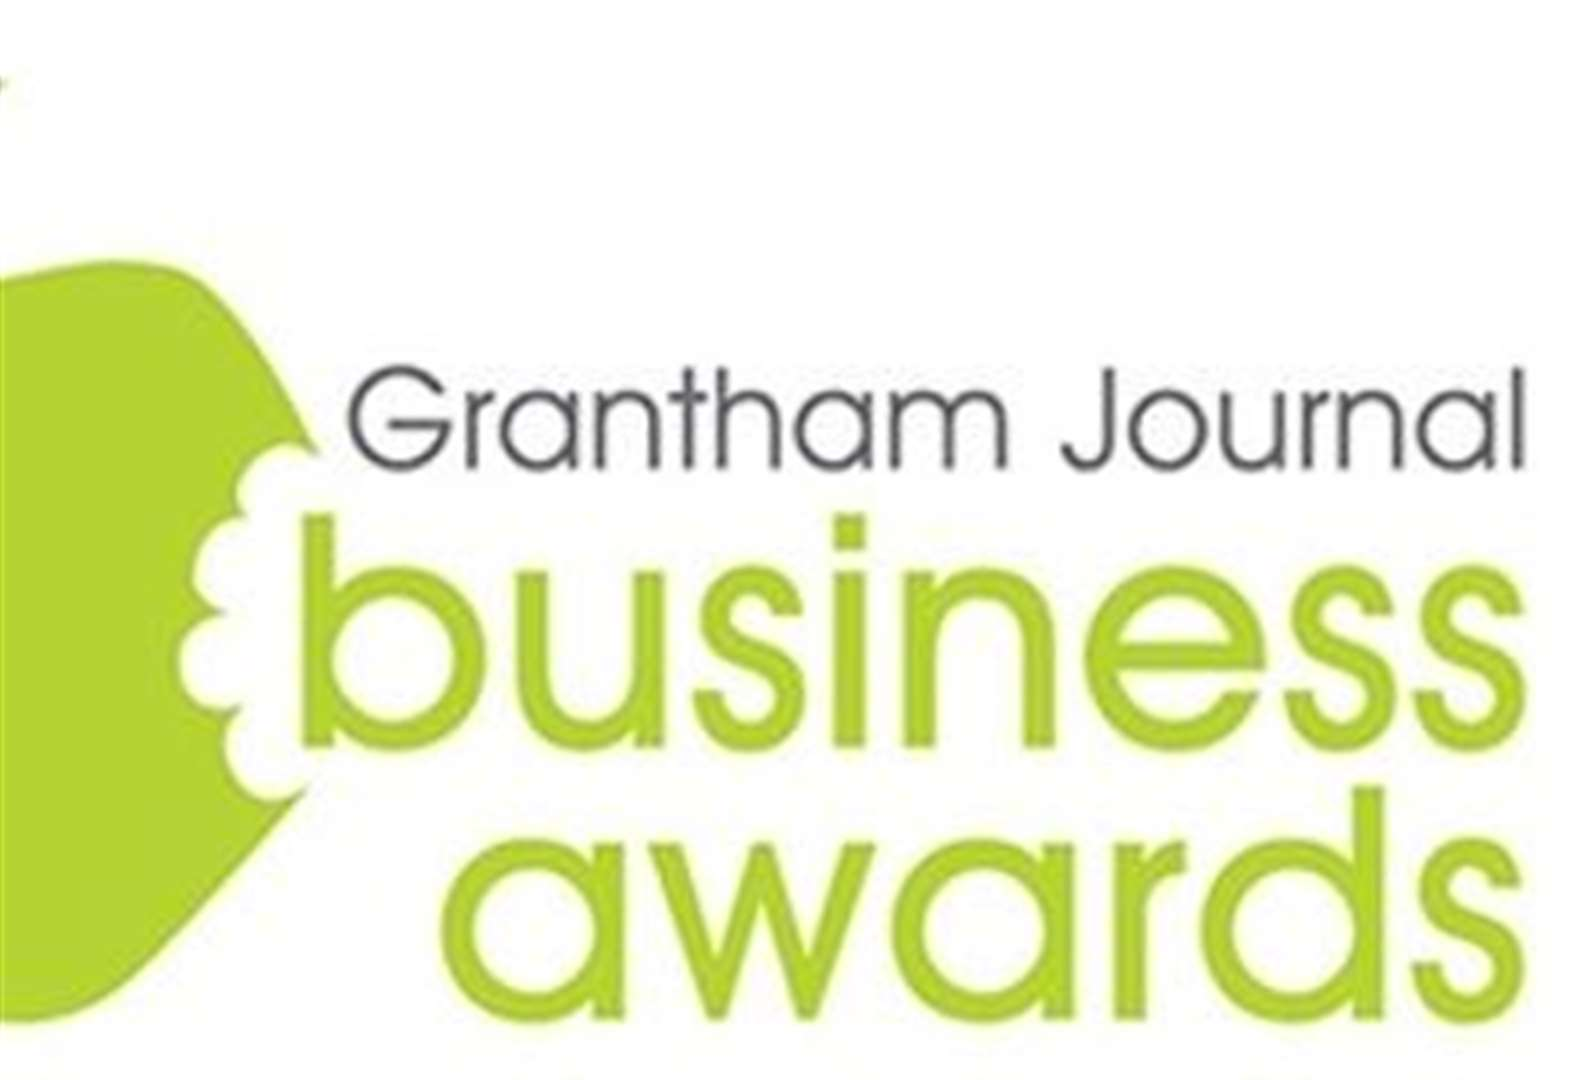 Grantham Journal Business Awards winners are revealed